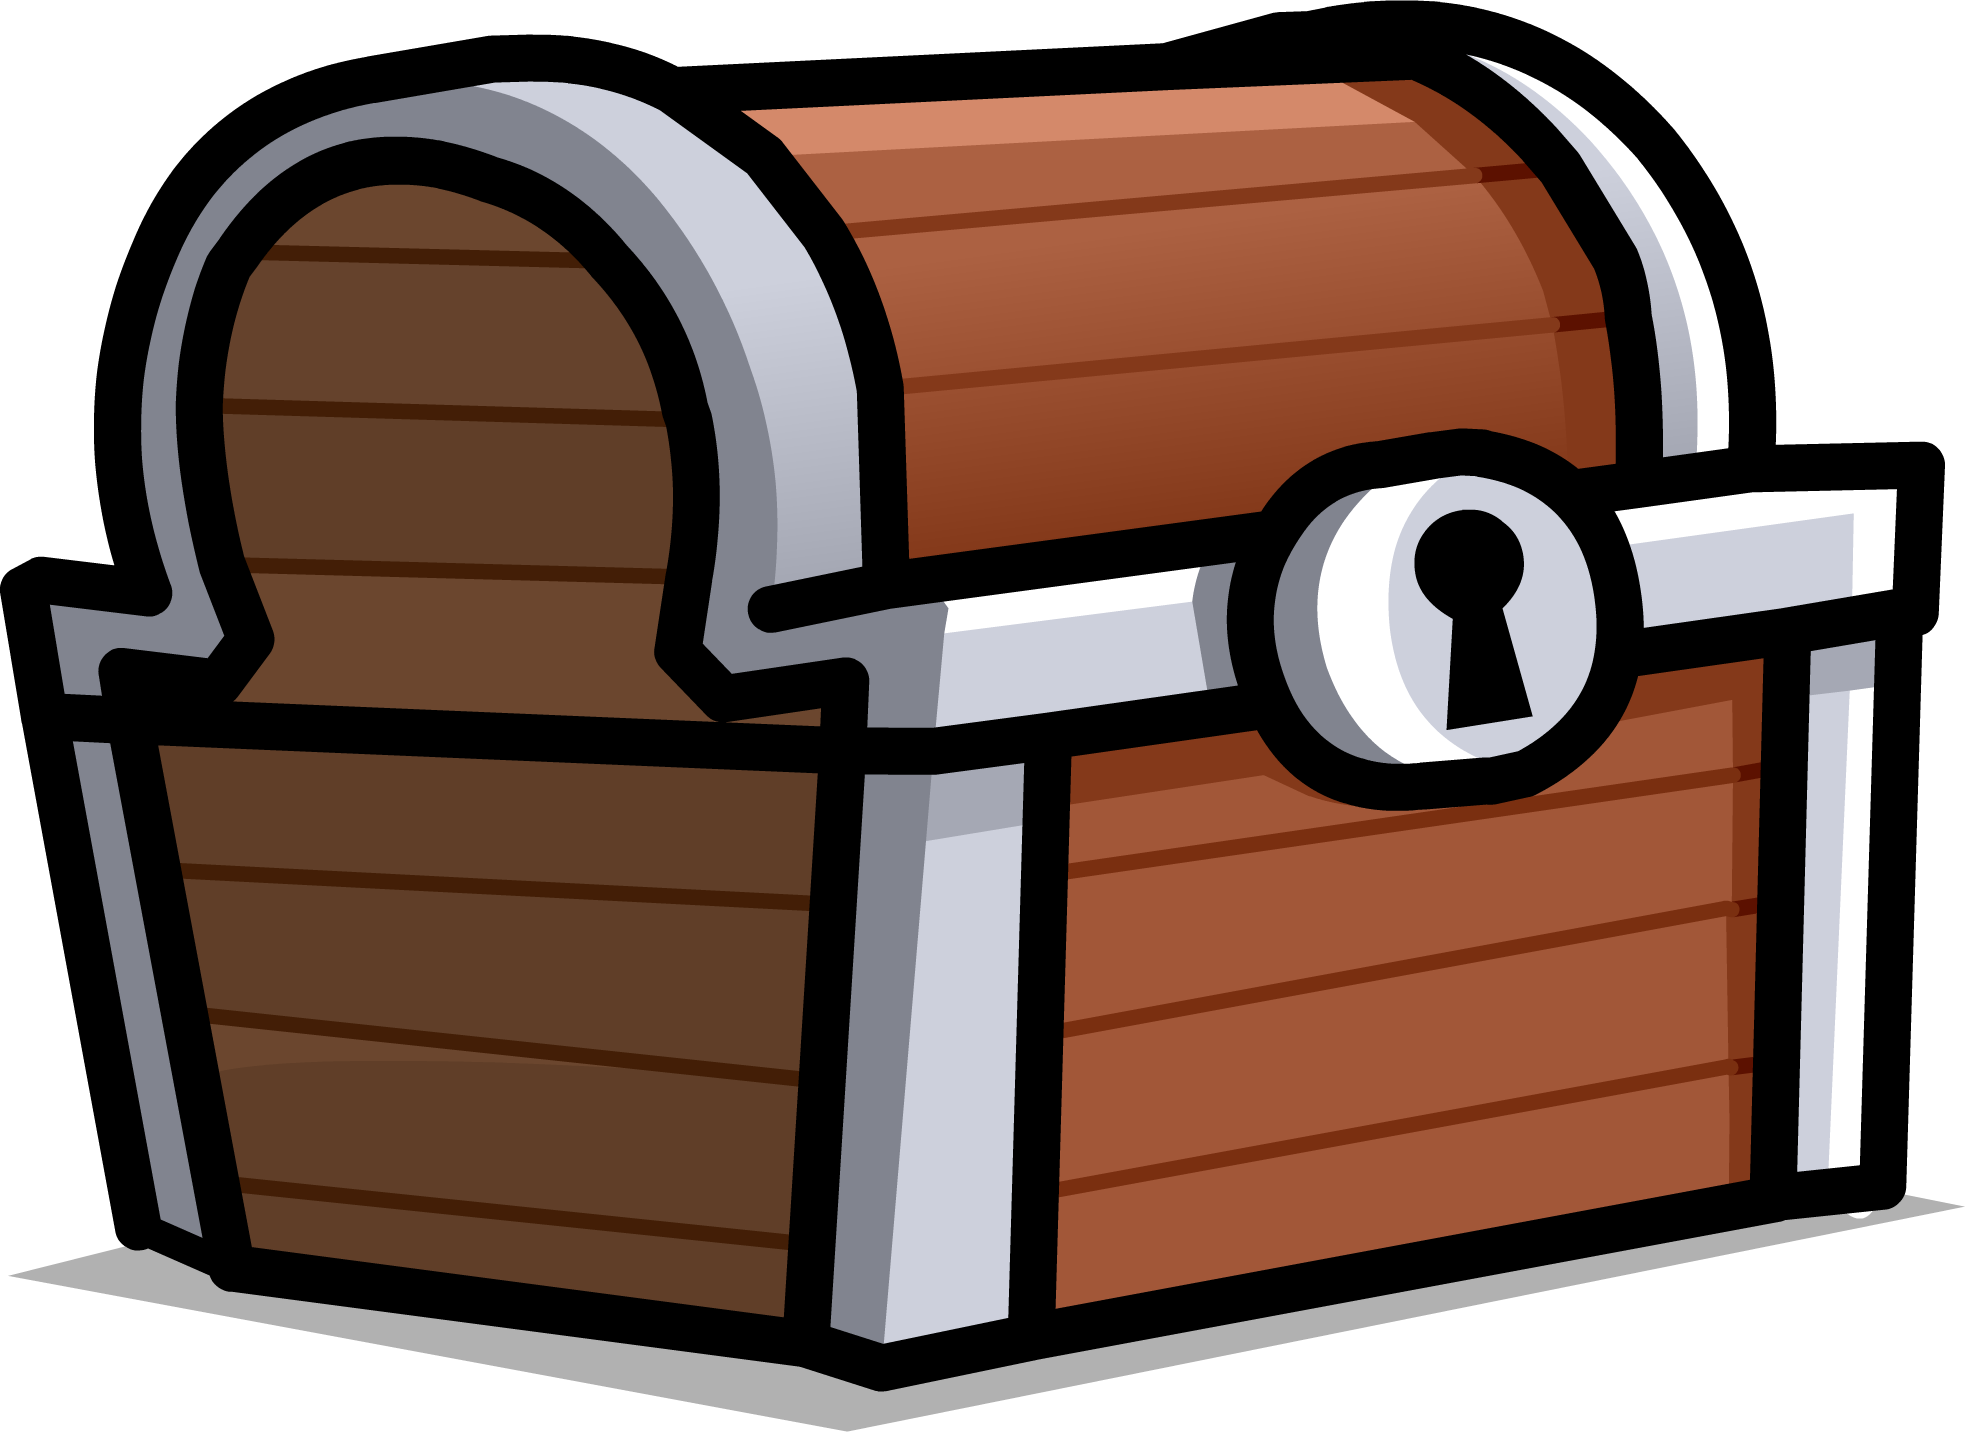 Image id sprite png. Treasure clipart community chest